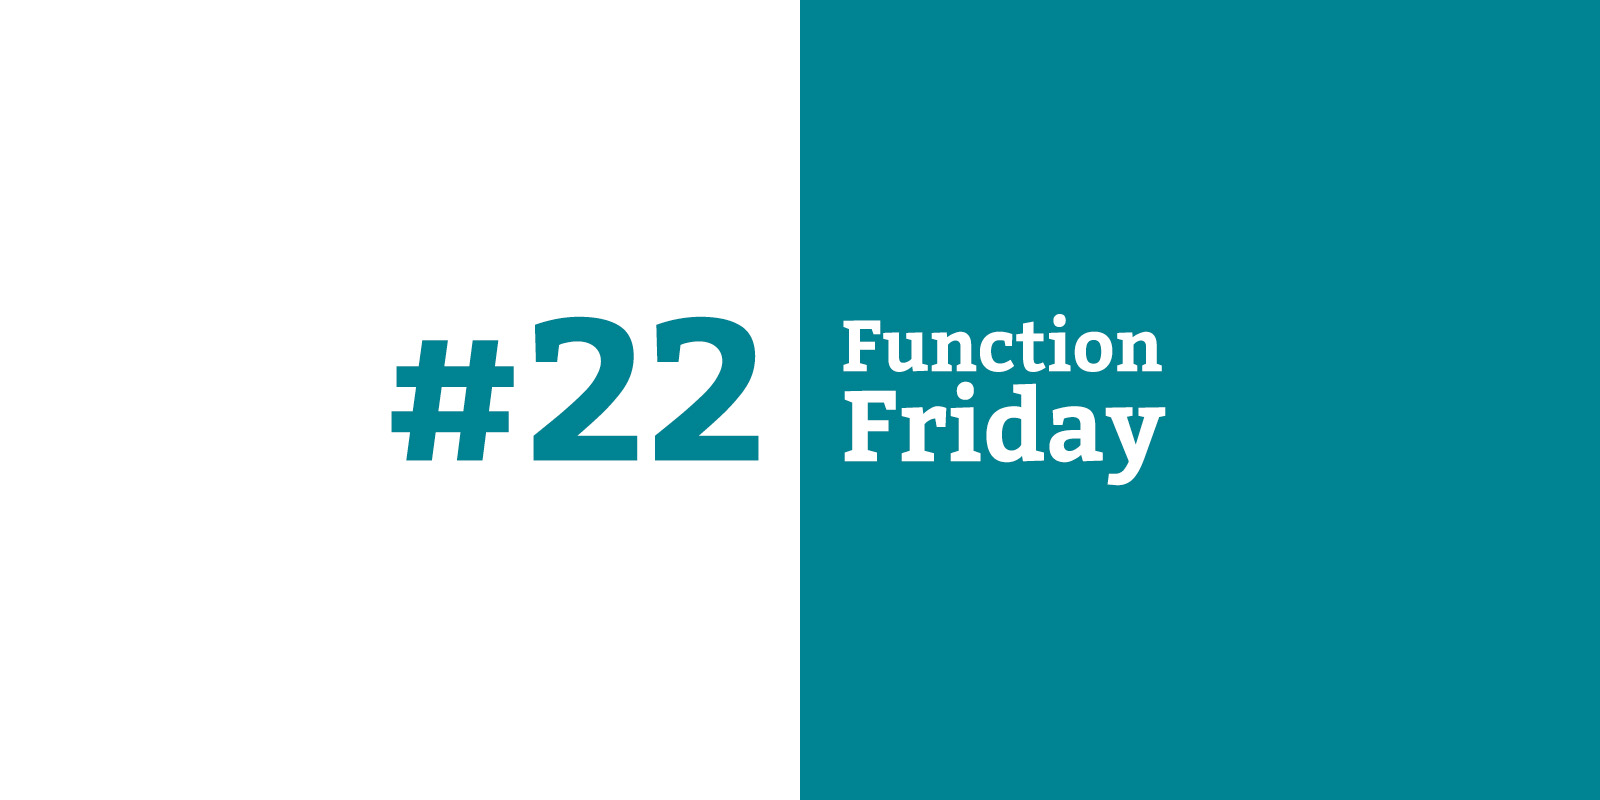 Function Friday #22